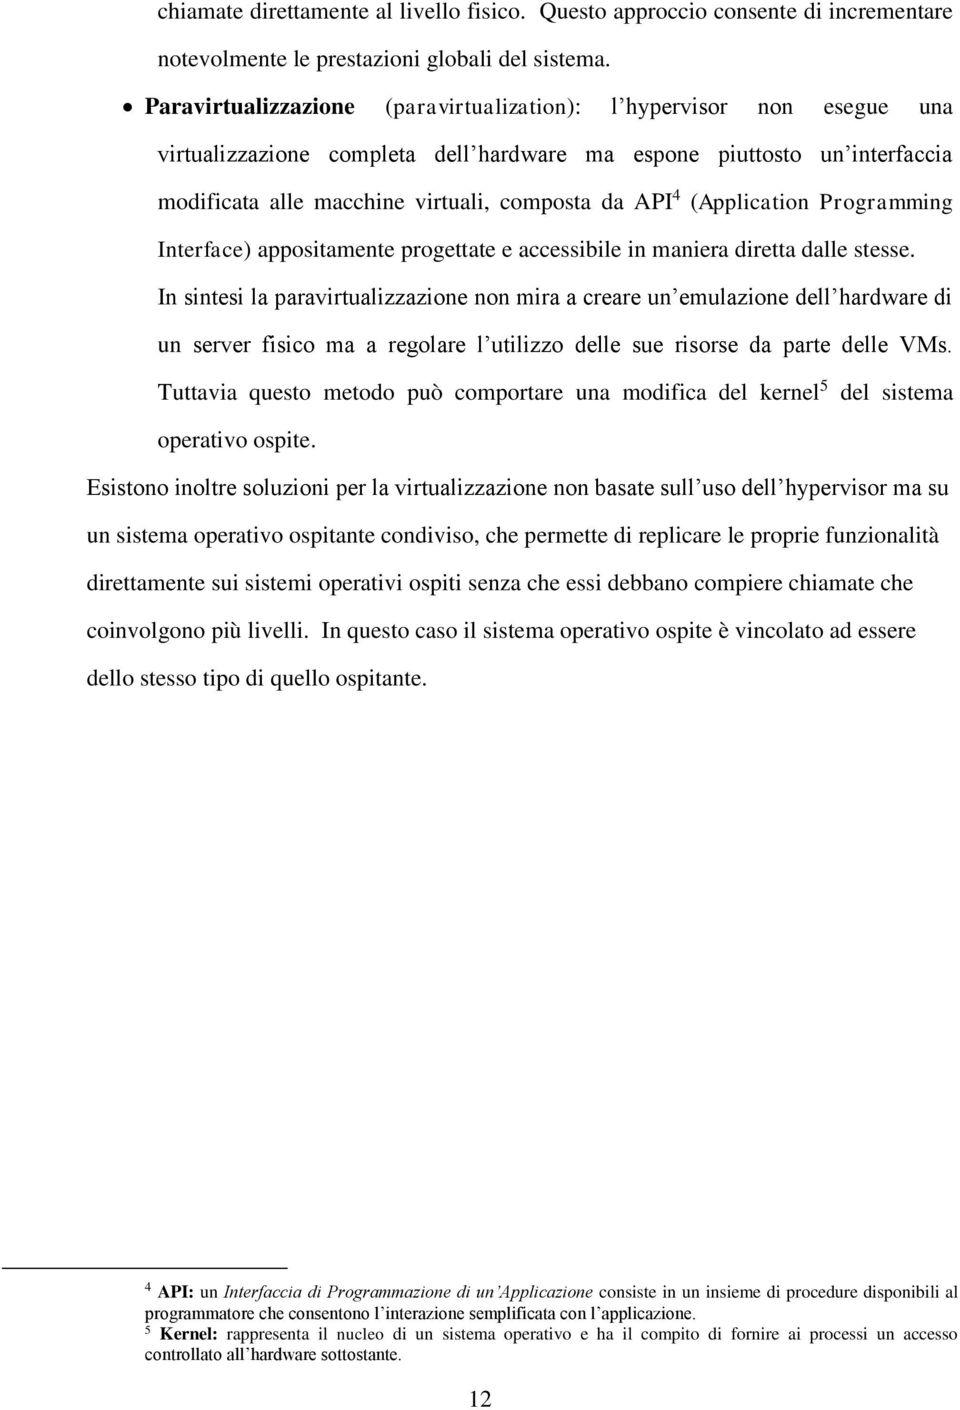 (Application Programming Interface) appositamente progettate e accessibile in maniera diretta dalle stesse.